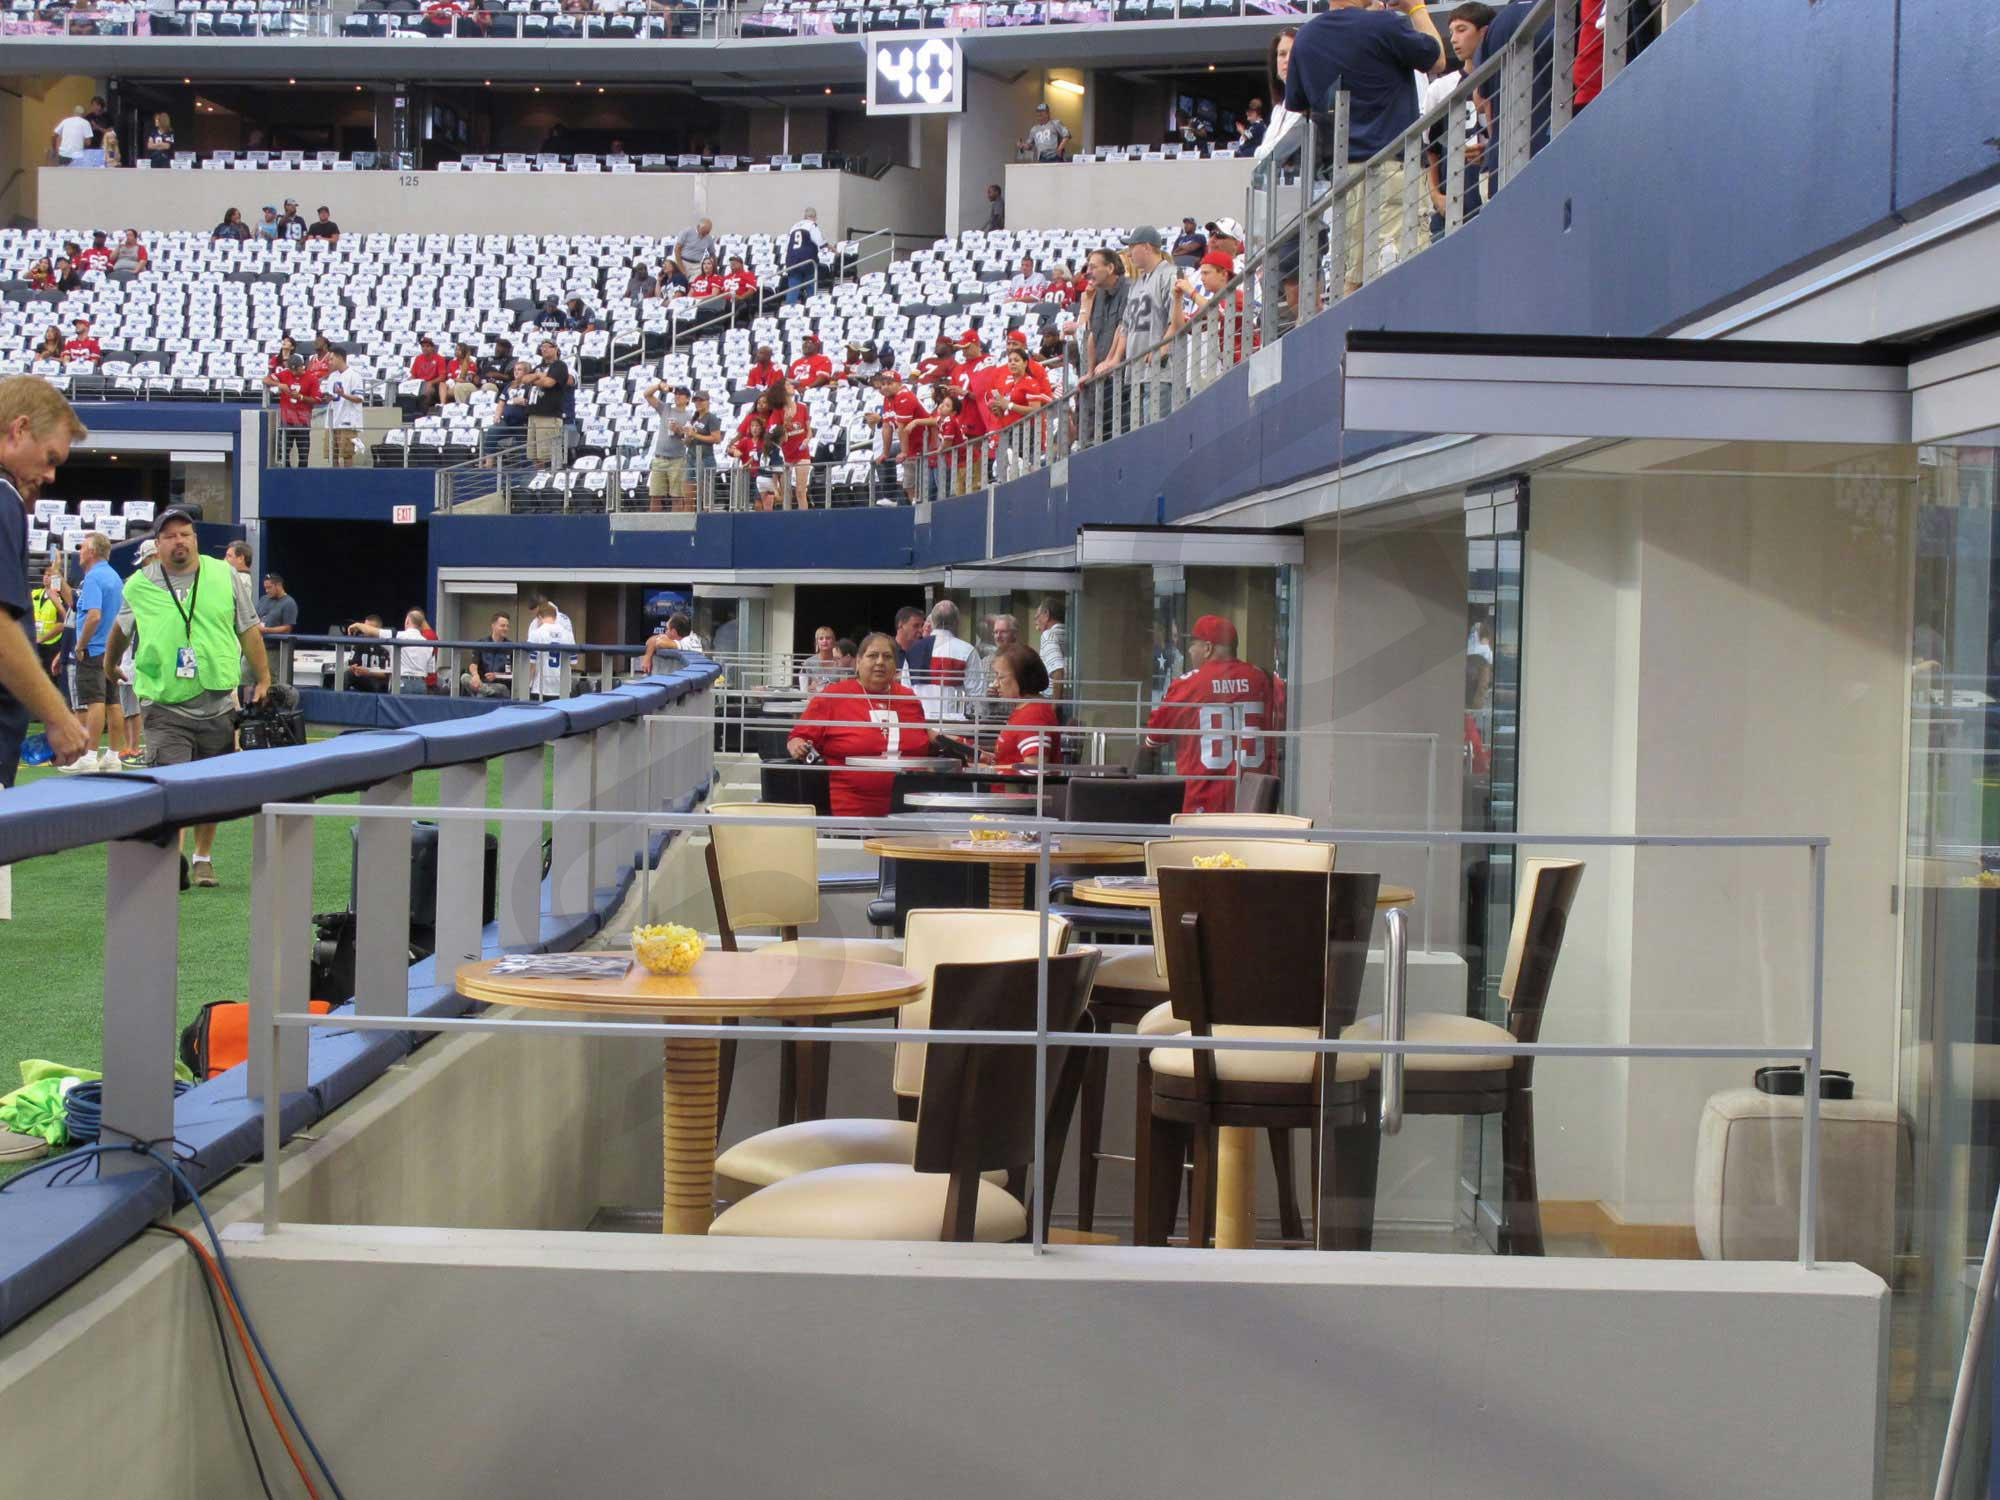 Field Level Suite Seating